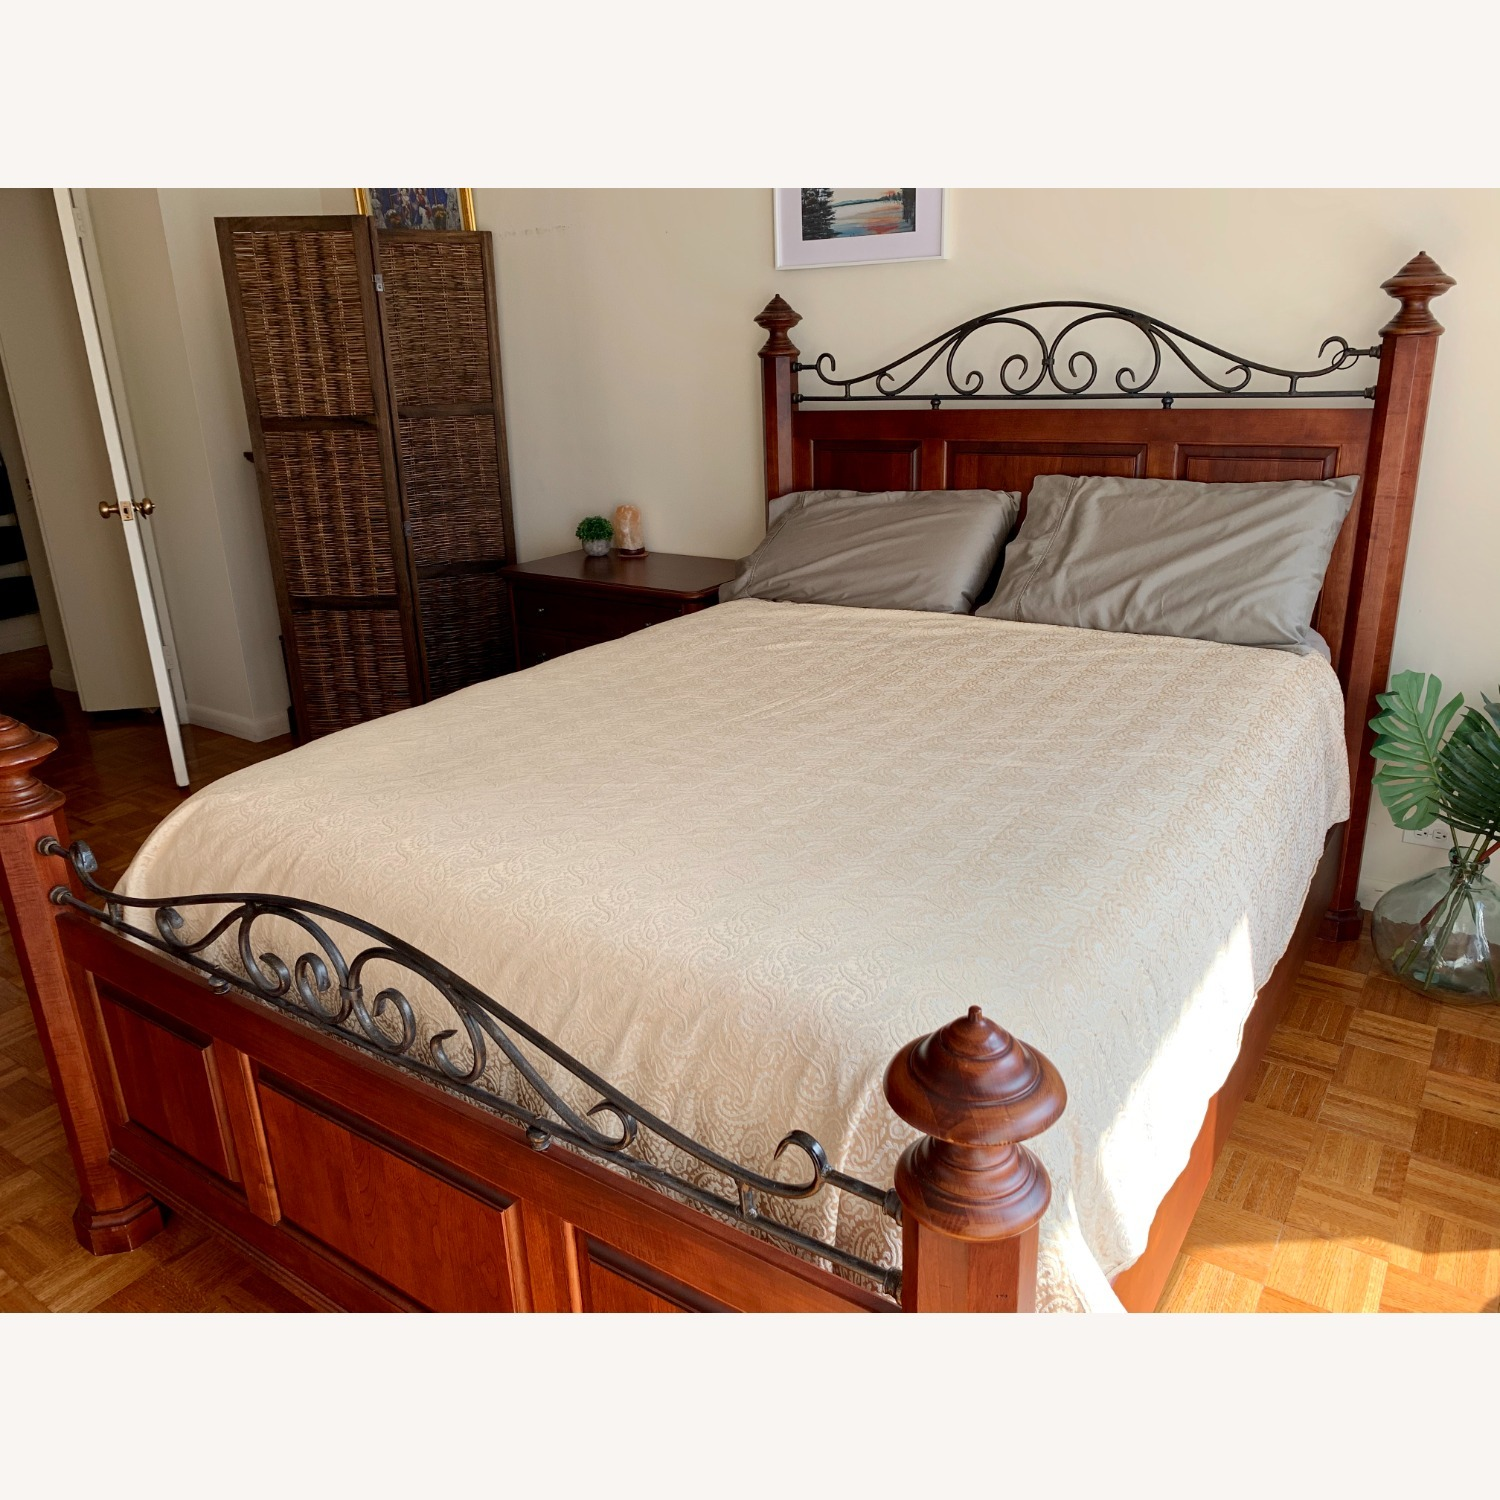 Durham Furniture Solid Wood Queen Bed - image-4